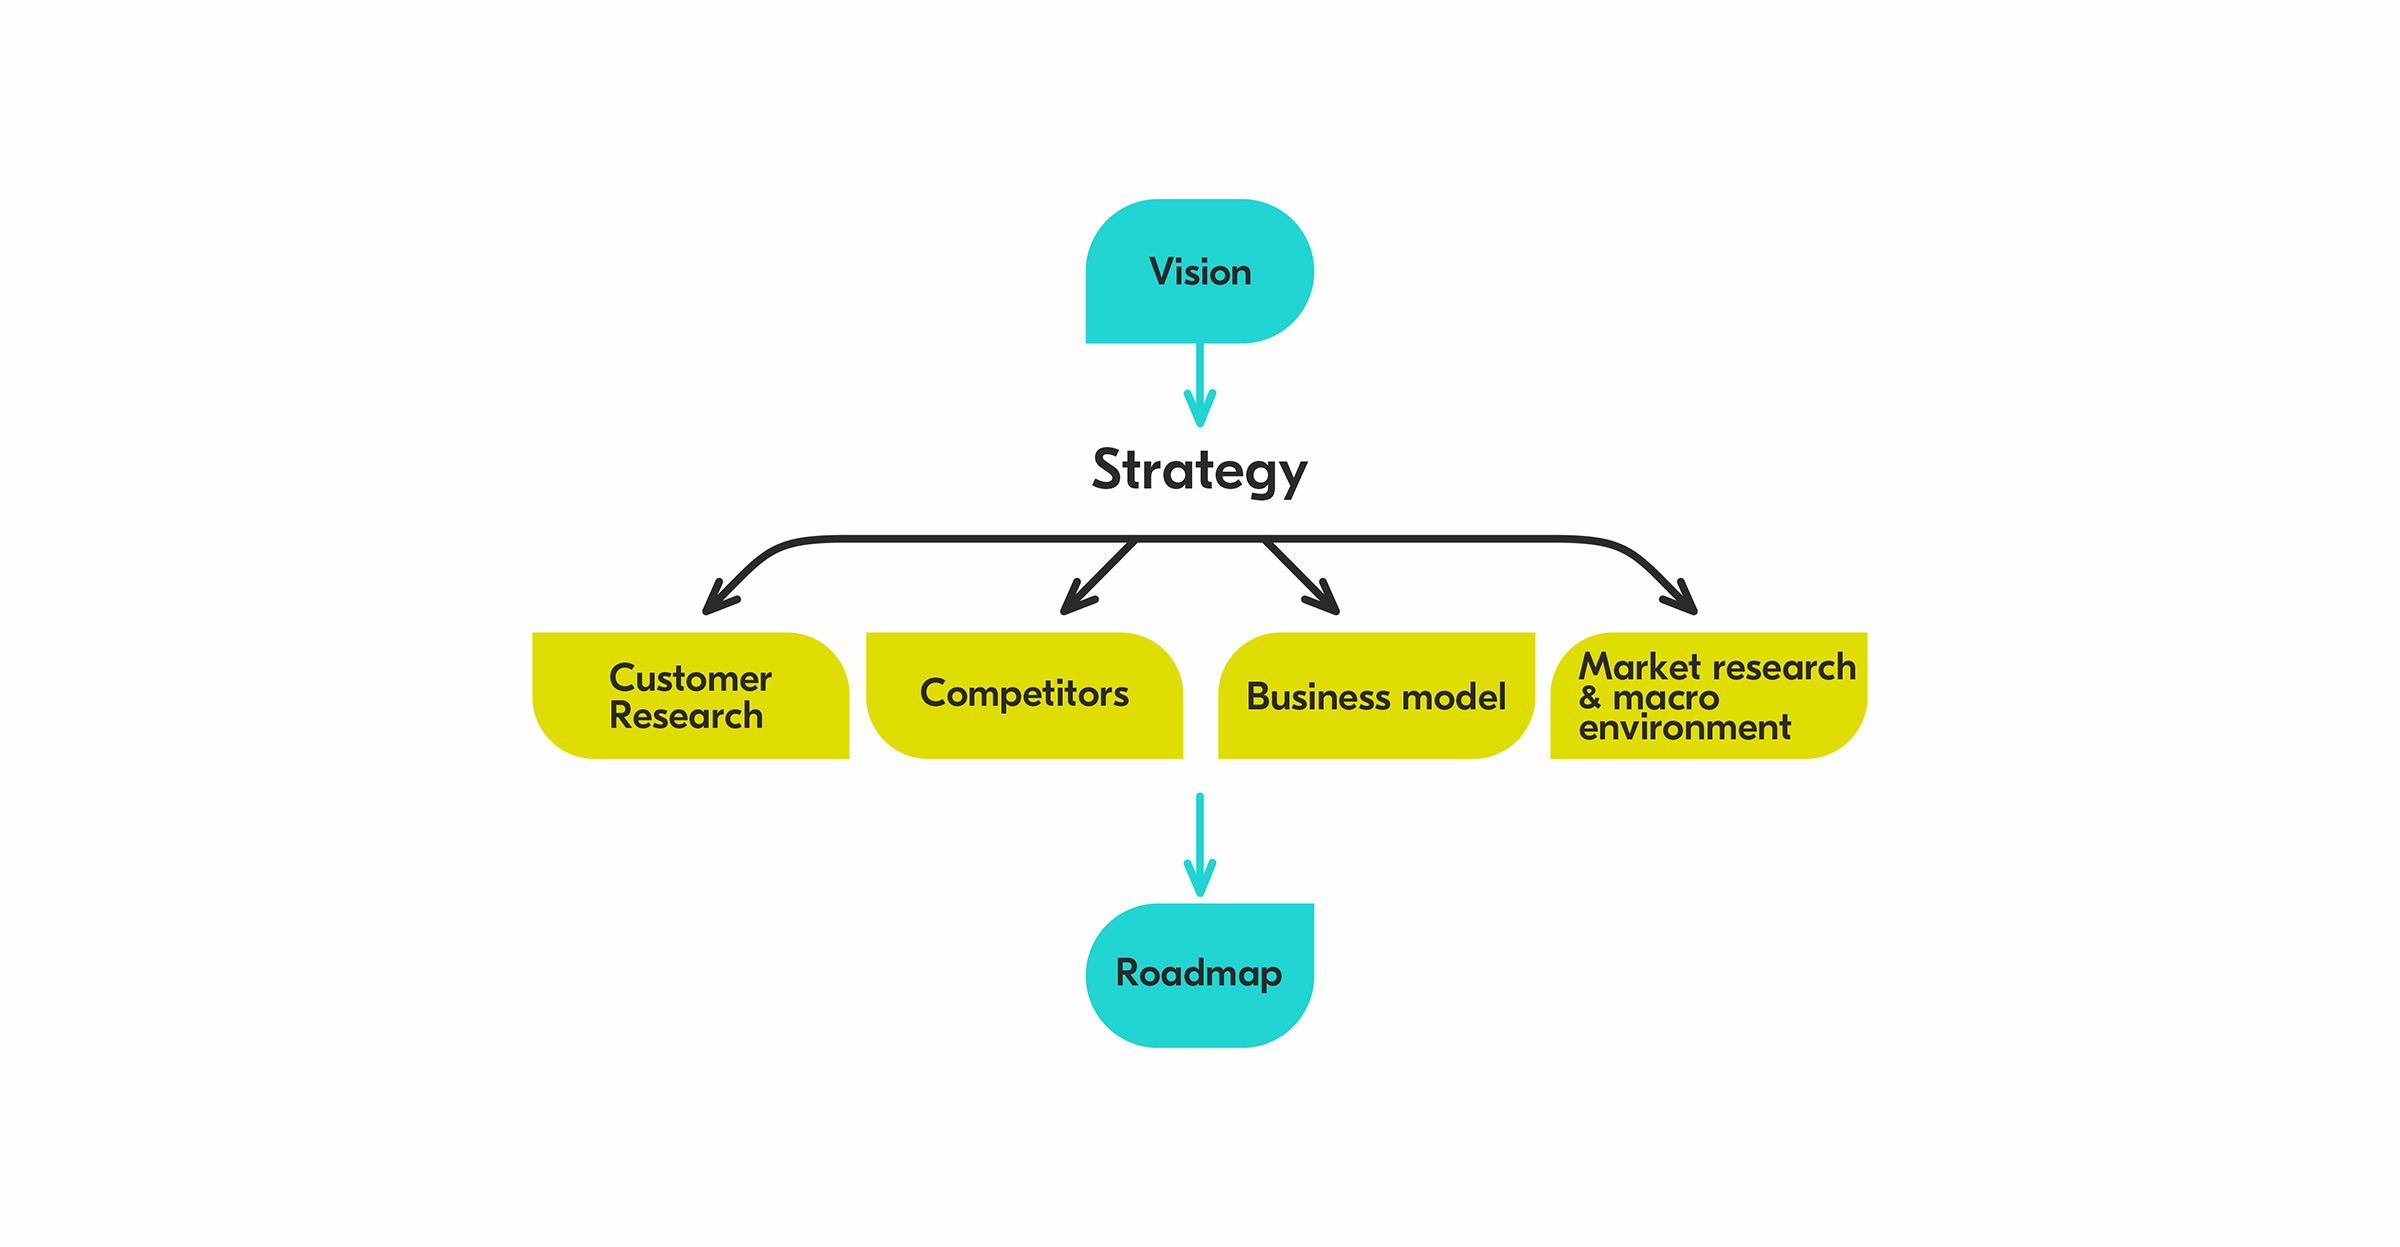 Product Development Strategy from Vision to Roadmap